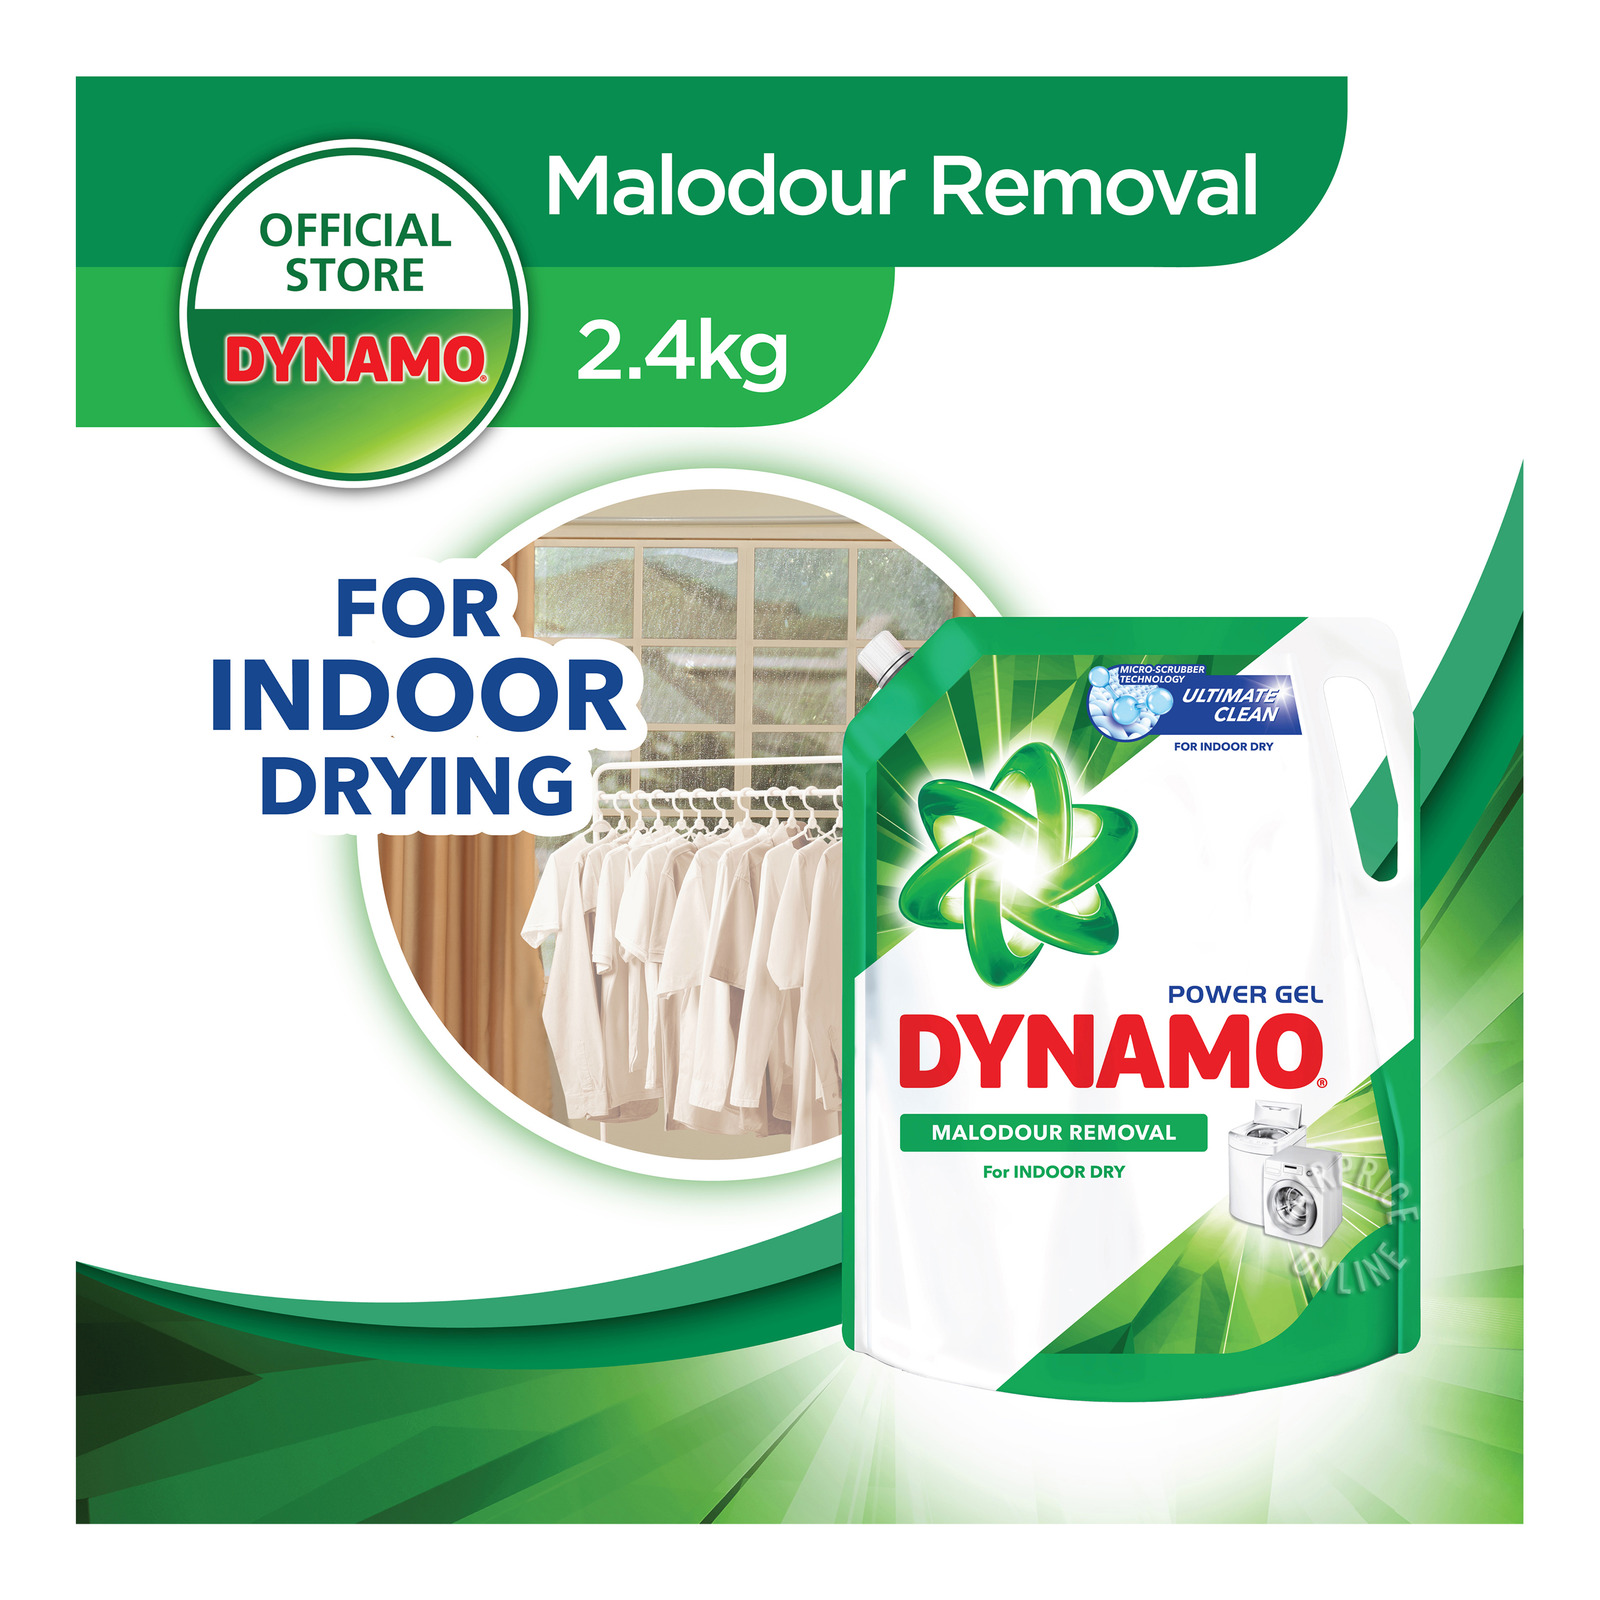 Dynamo Power Gel Laundry Detergent Refill - Indoor Dry